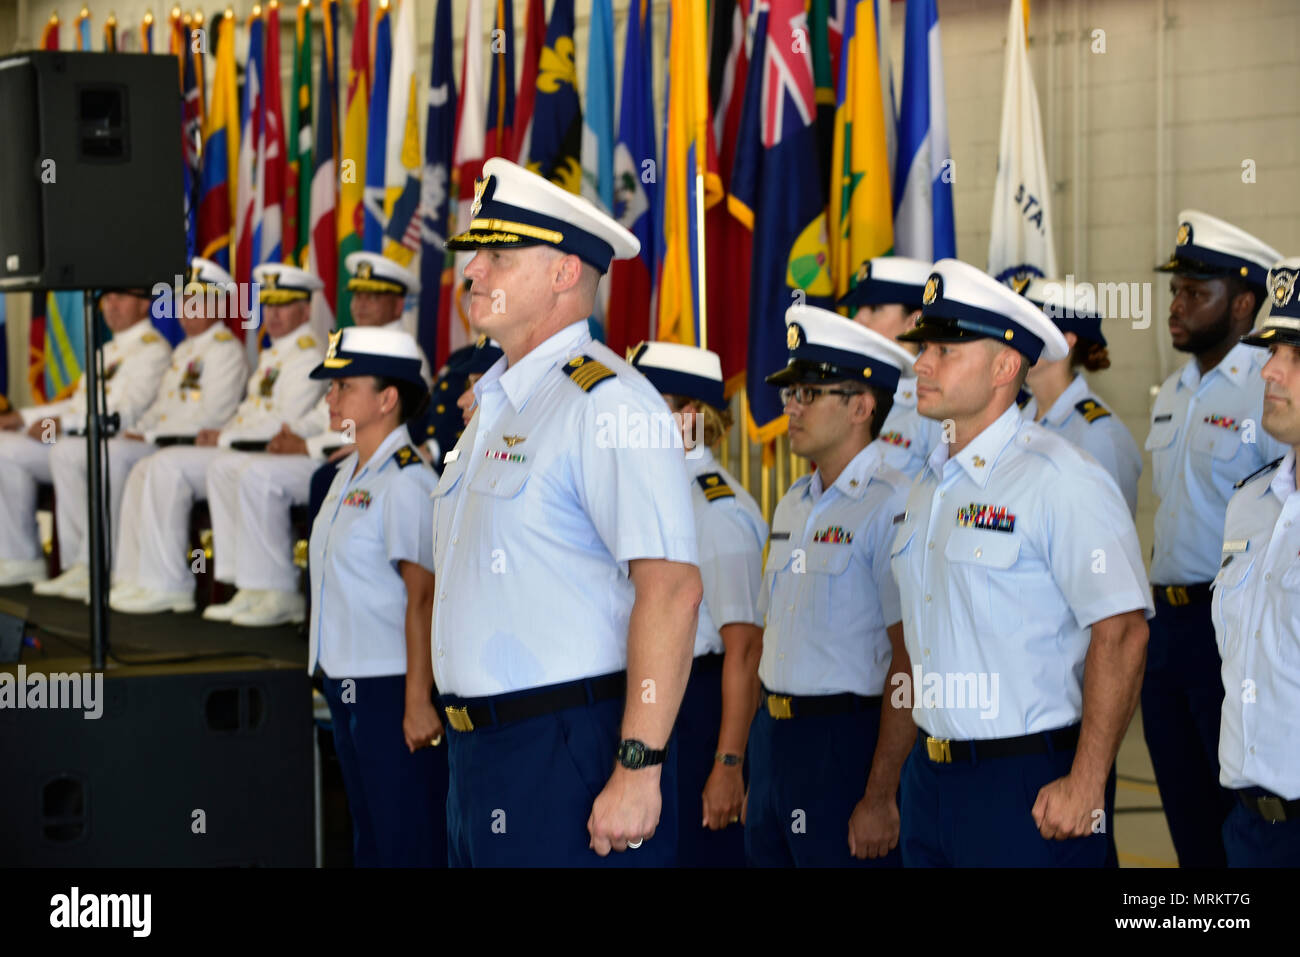 The Coast Guard Seventh District crew stands at attention during their Change of Command Ceremony at Air Station Miami on June 23, 2017. Coast Guard Rear Adm. Peter J. Brown relieved Rear Adm. Scott A. Buschman as commander of the Seventh District. Stock Photo